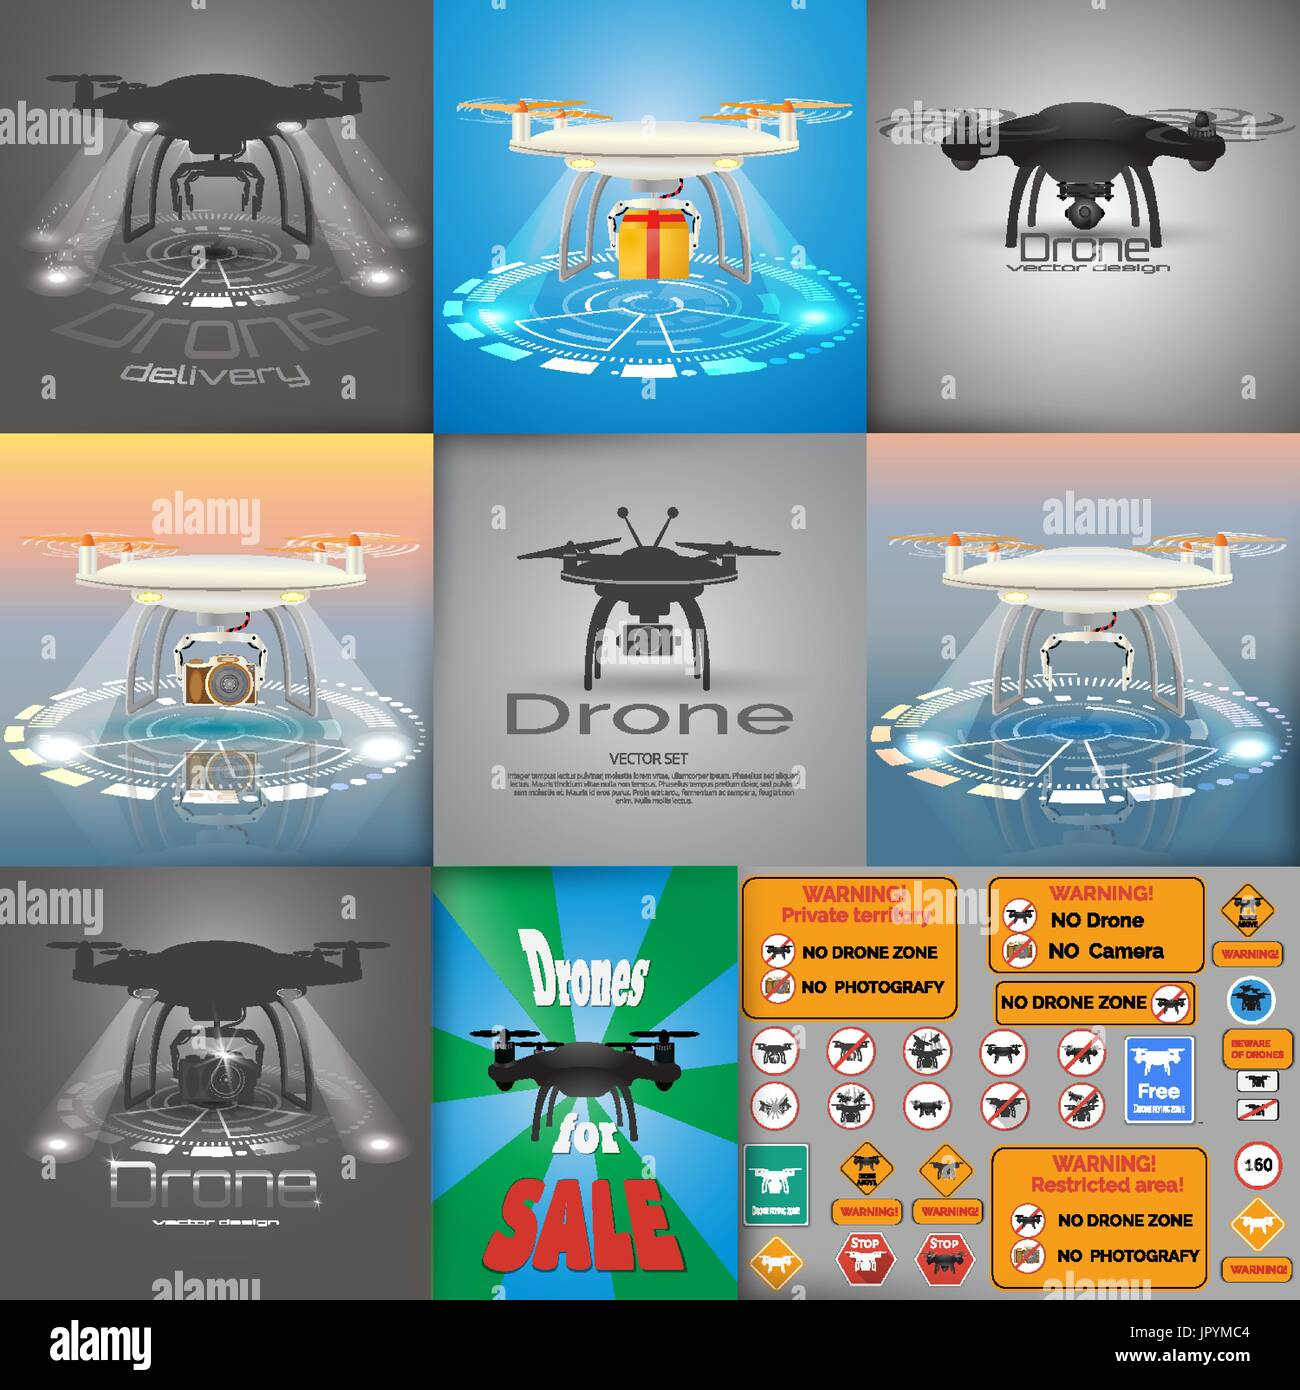 Big vector set of  drone  illustrations. Drone logo.  Drone delivery concept.  Warning sing. Flyer in retro style. Eps10 vector design - Stock Image